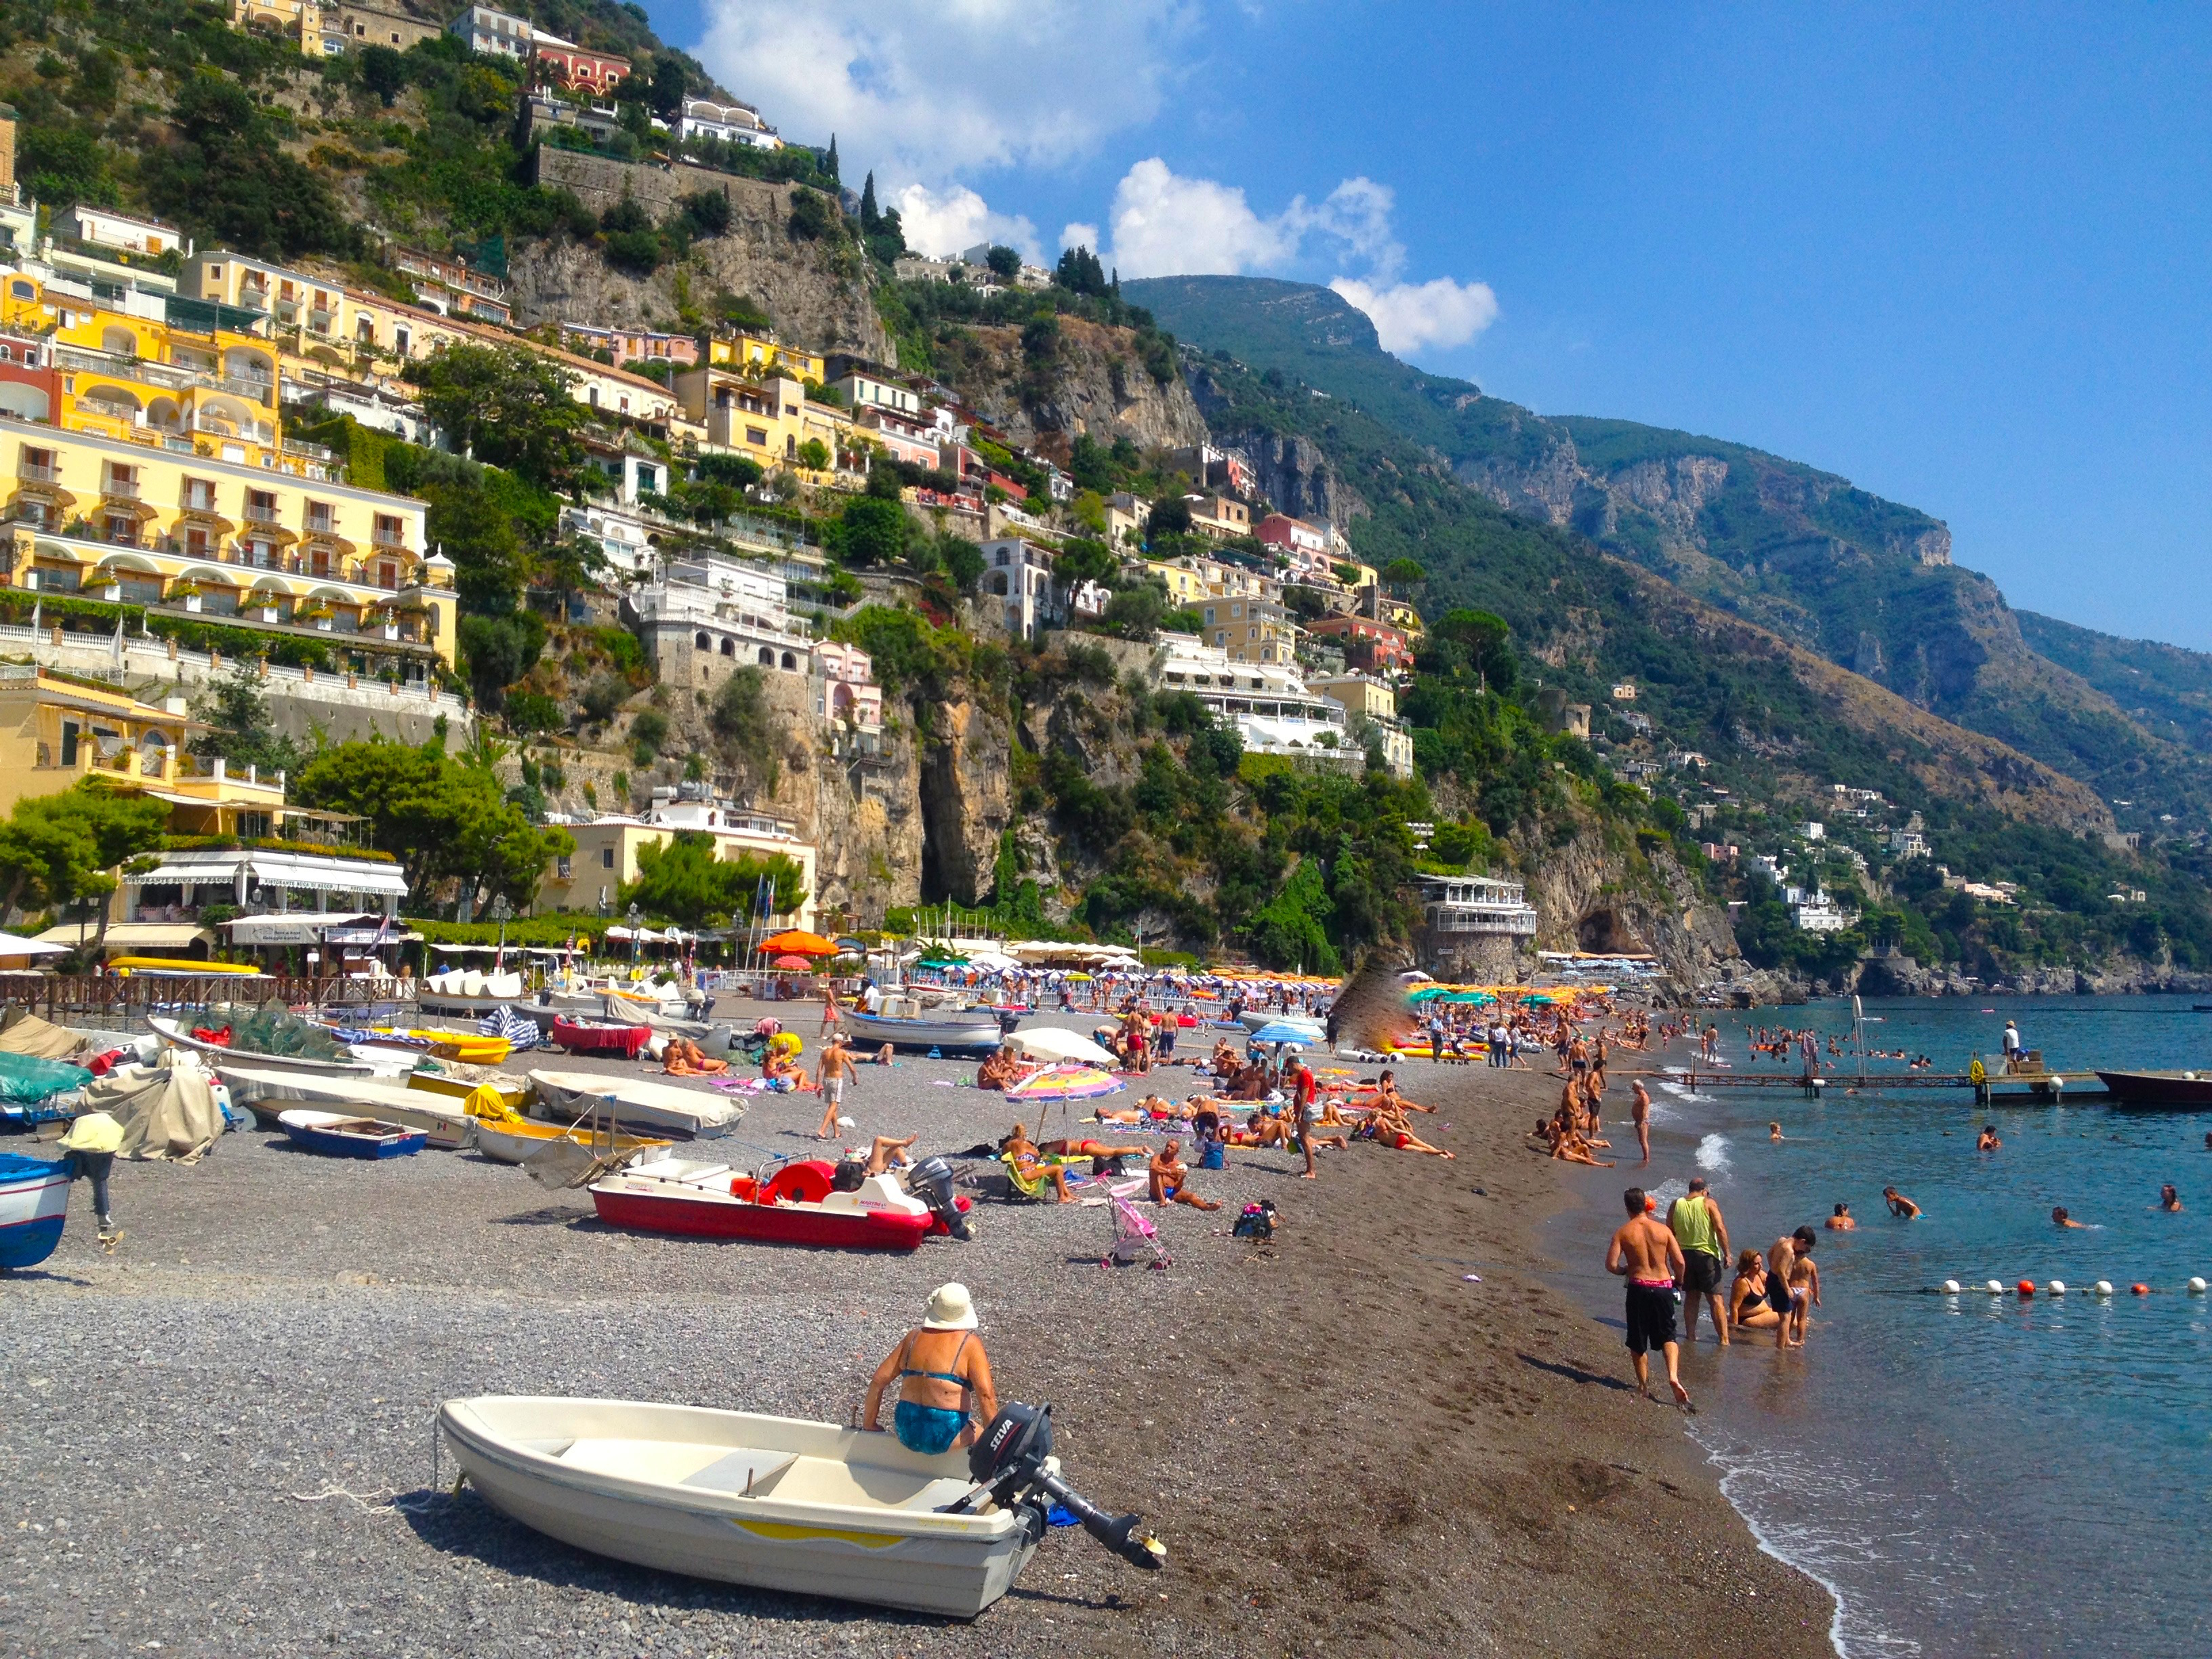 Maximize Your Time in Positano, Italy (By Keeping These Thoughts in Mind)